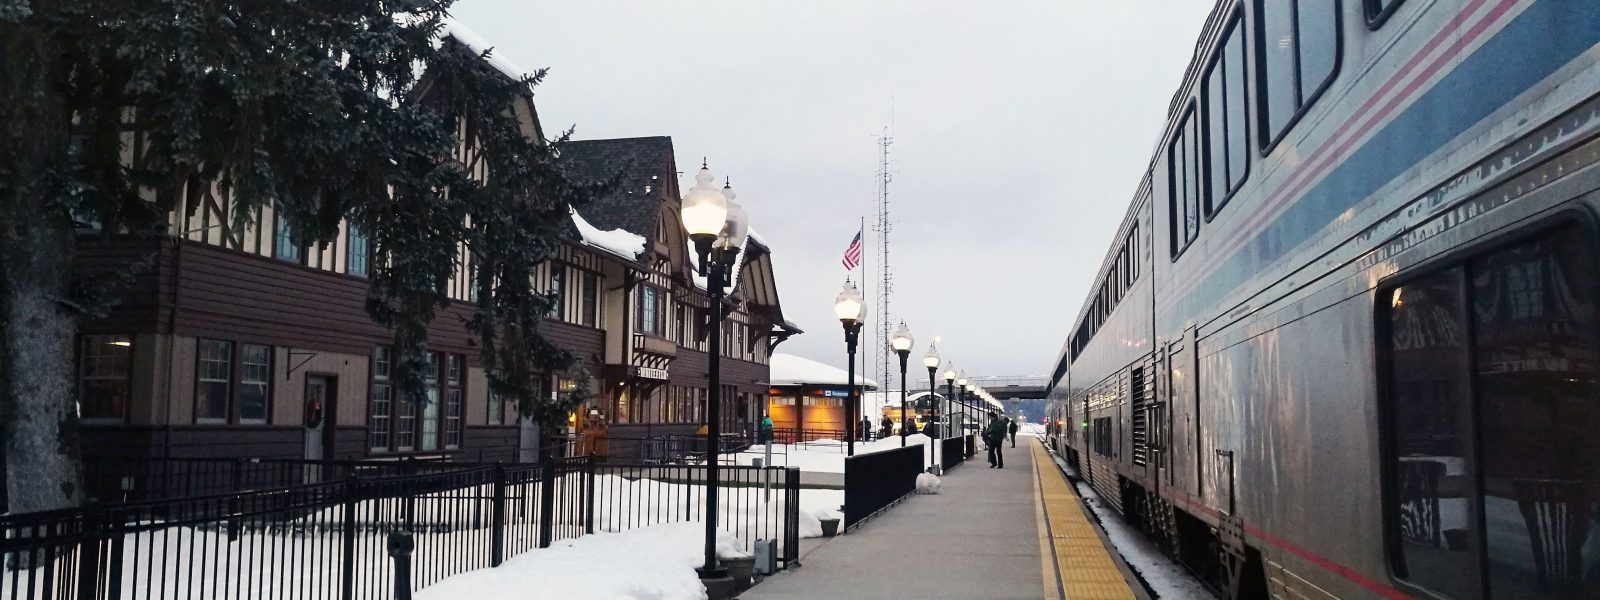 Amtrak's Empire Builder – in the Winter!